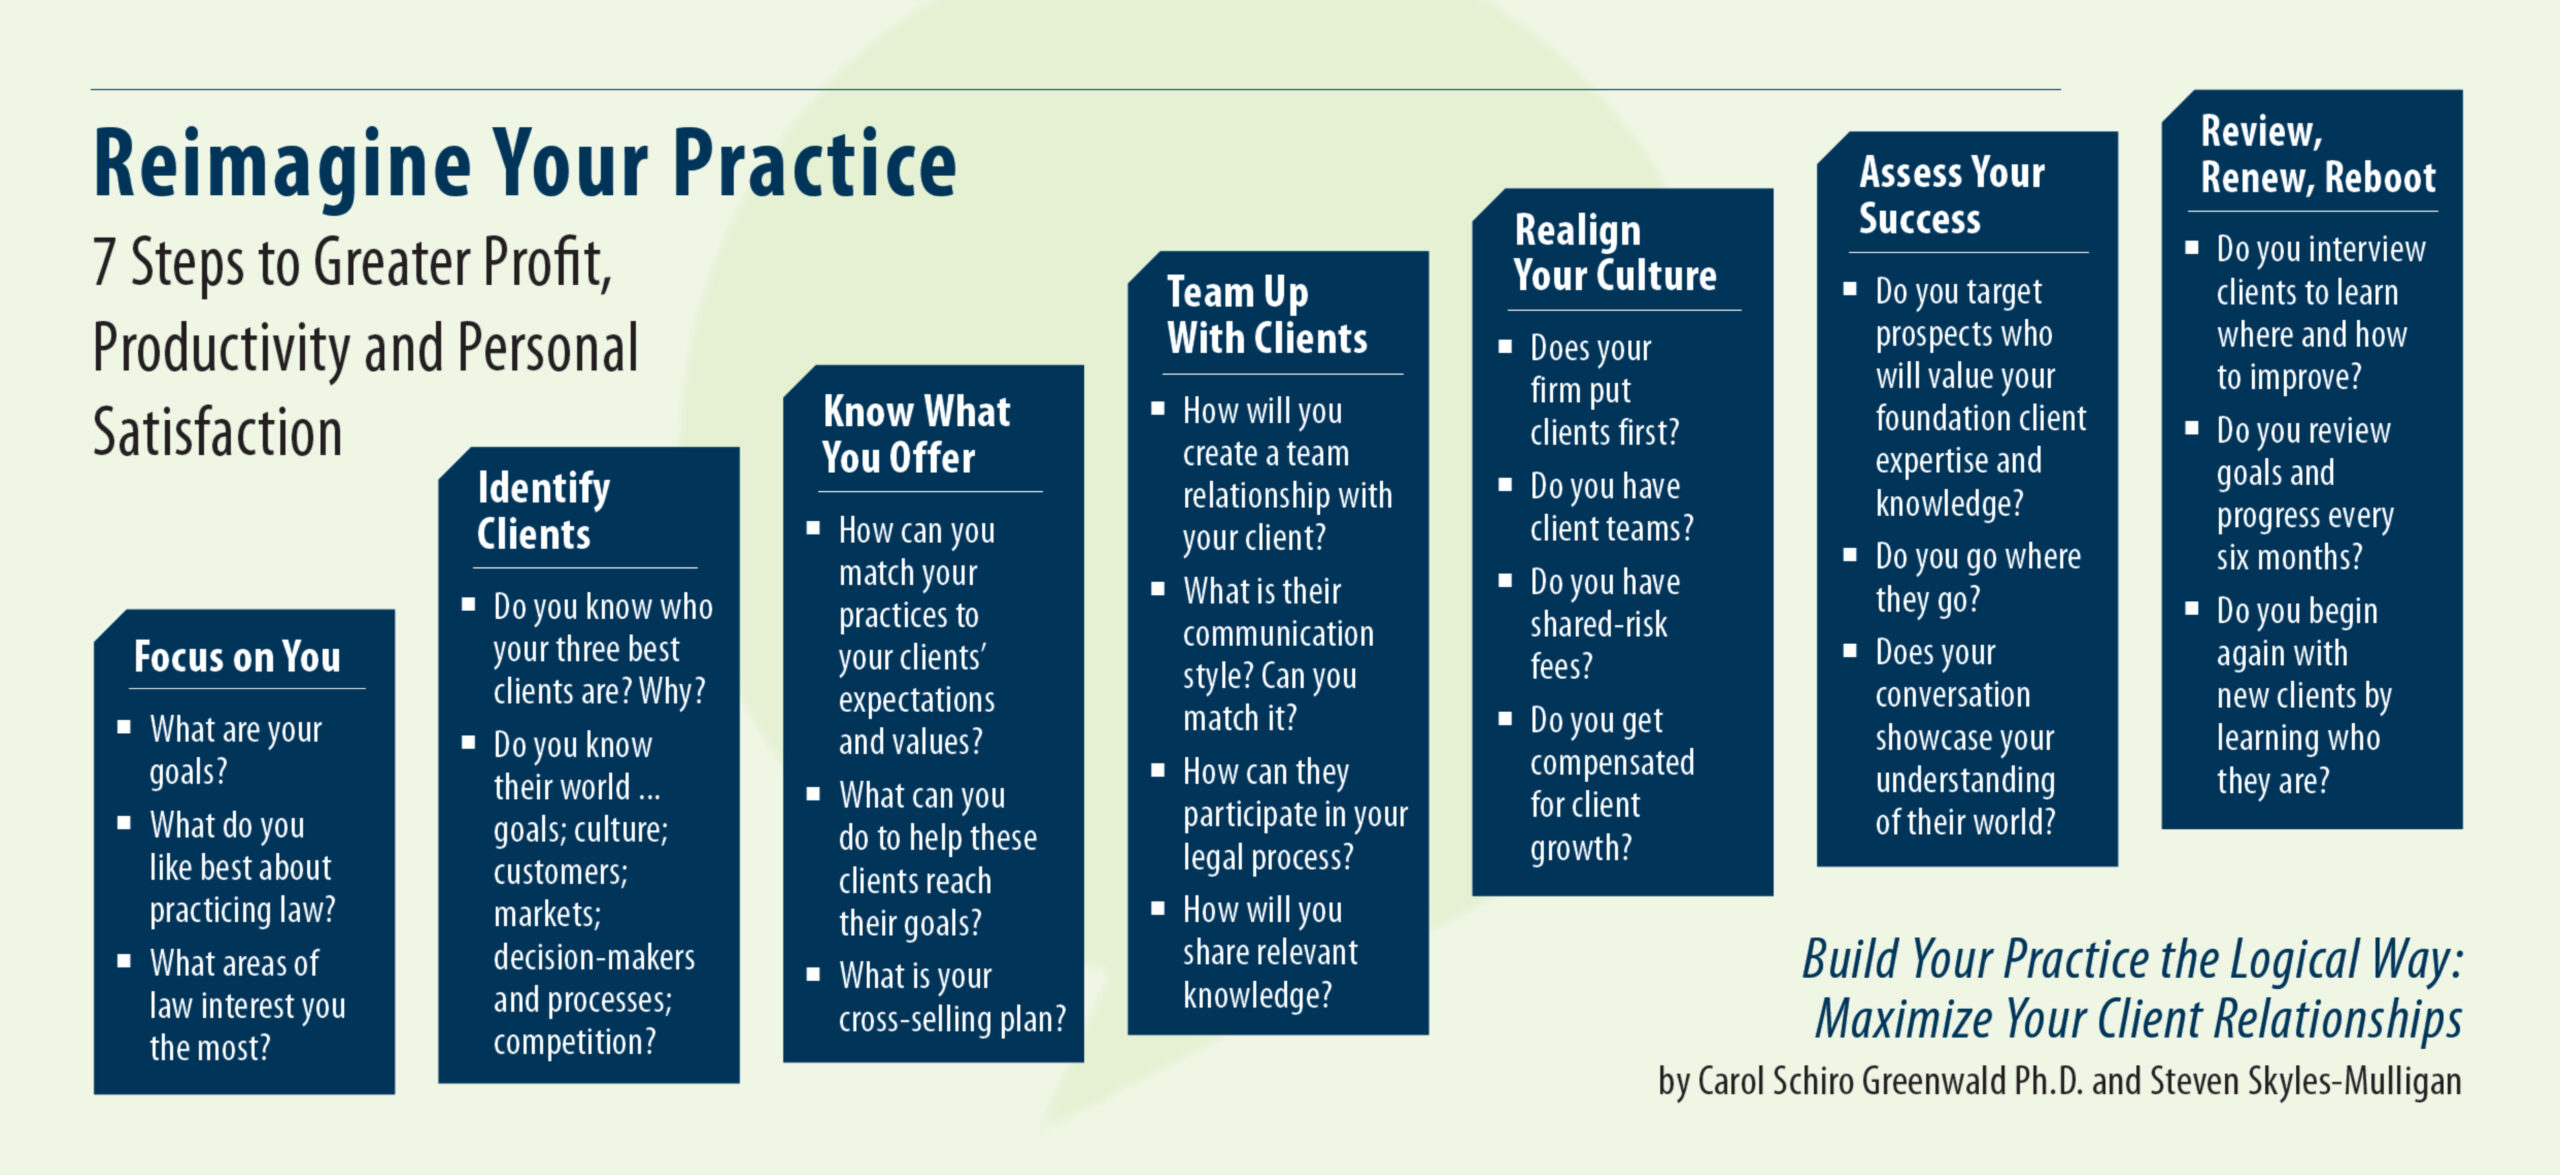 Reimagine Your Practice: 7 Steps to Greater Profit, Productivity and Personal Satisfaction